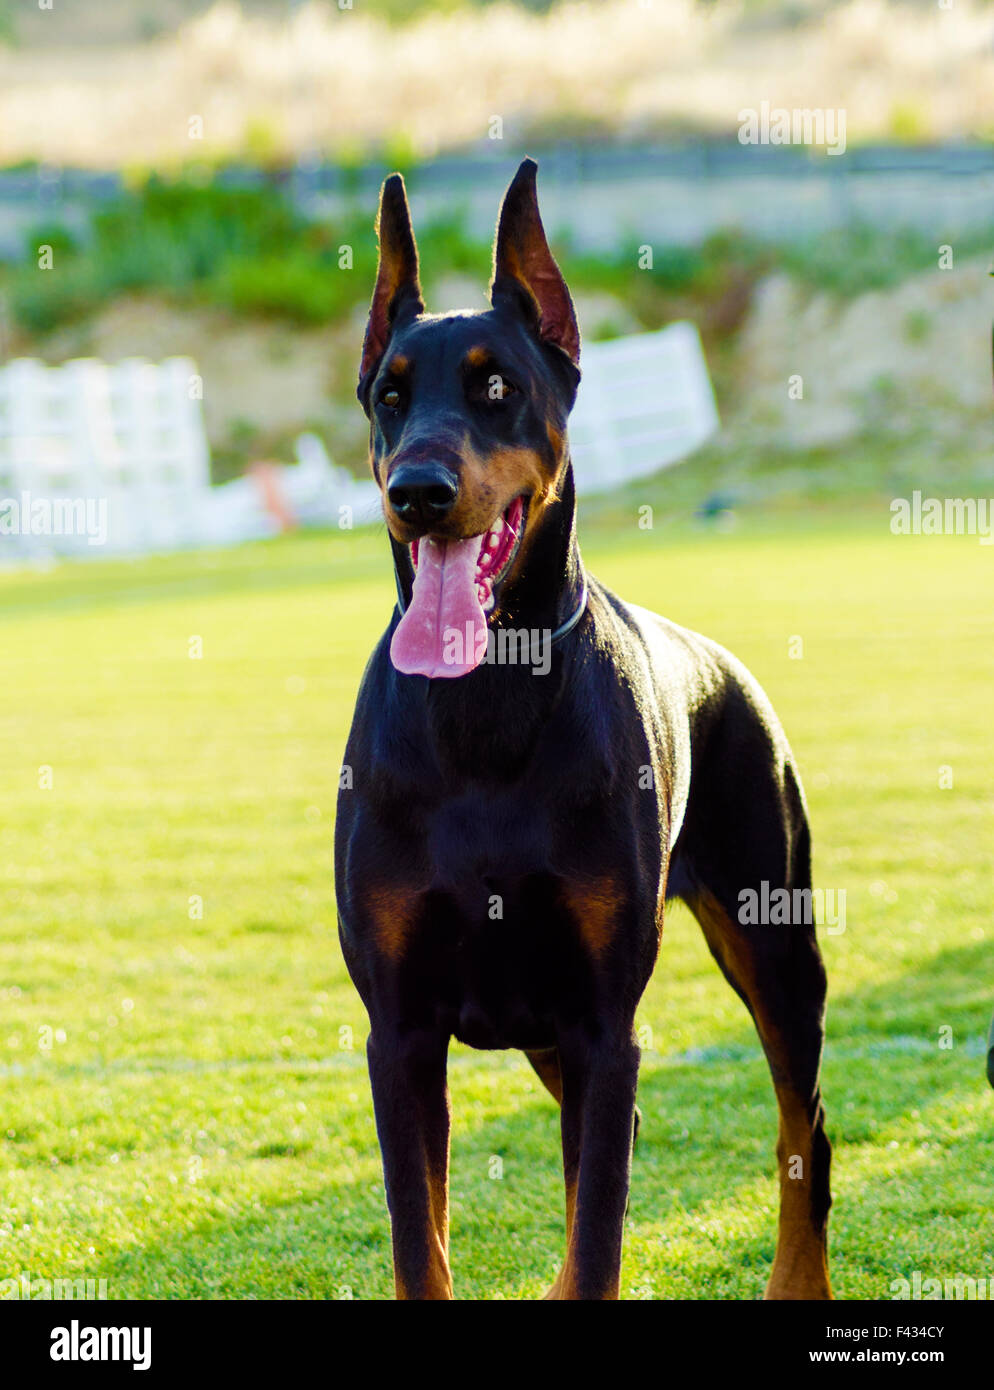 A young, beautiful, black and tan Doberman Pinscher standing on the lawn while sticking its tongue out and looking - Stock Image